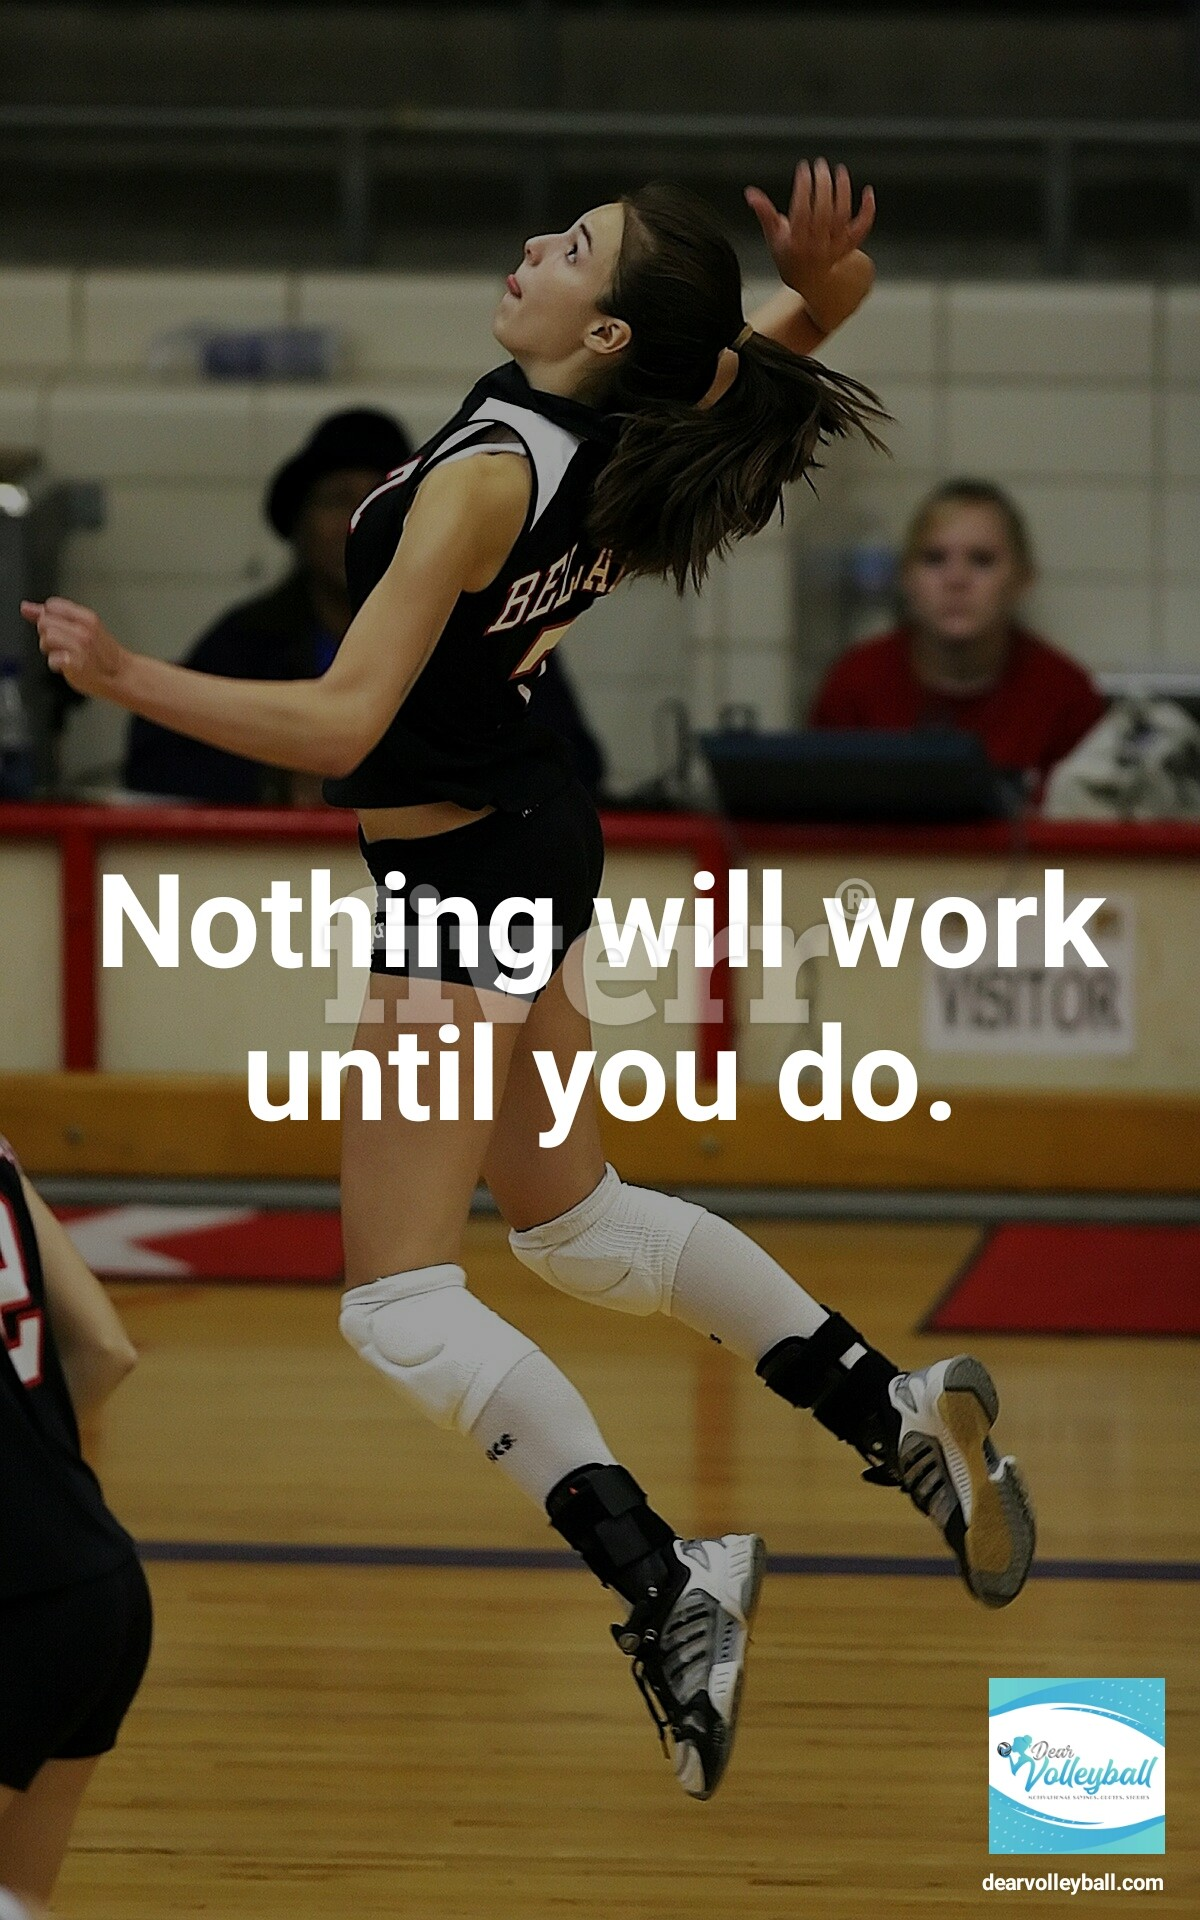 Nothing will work until you do and 54 short inspirational quotes on DearVolleyball.com